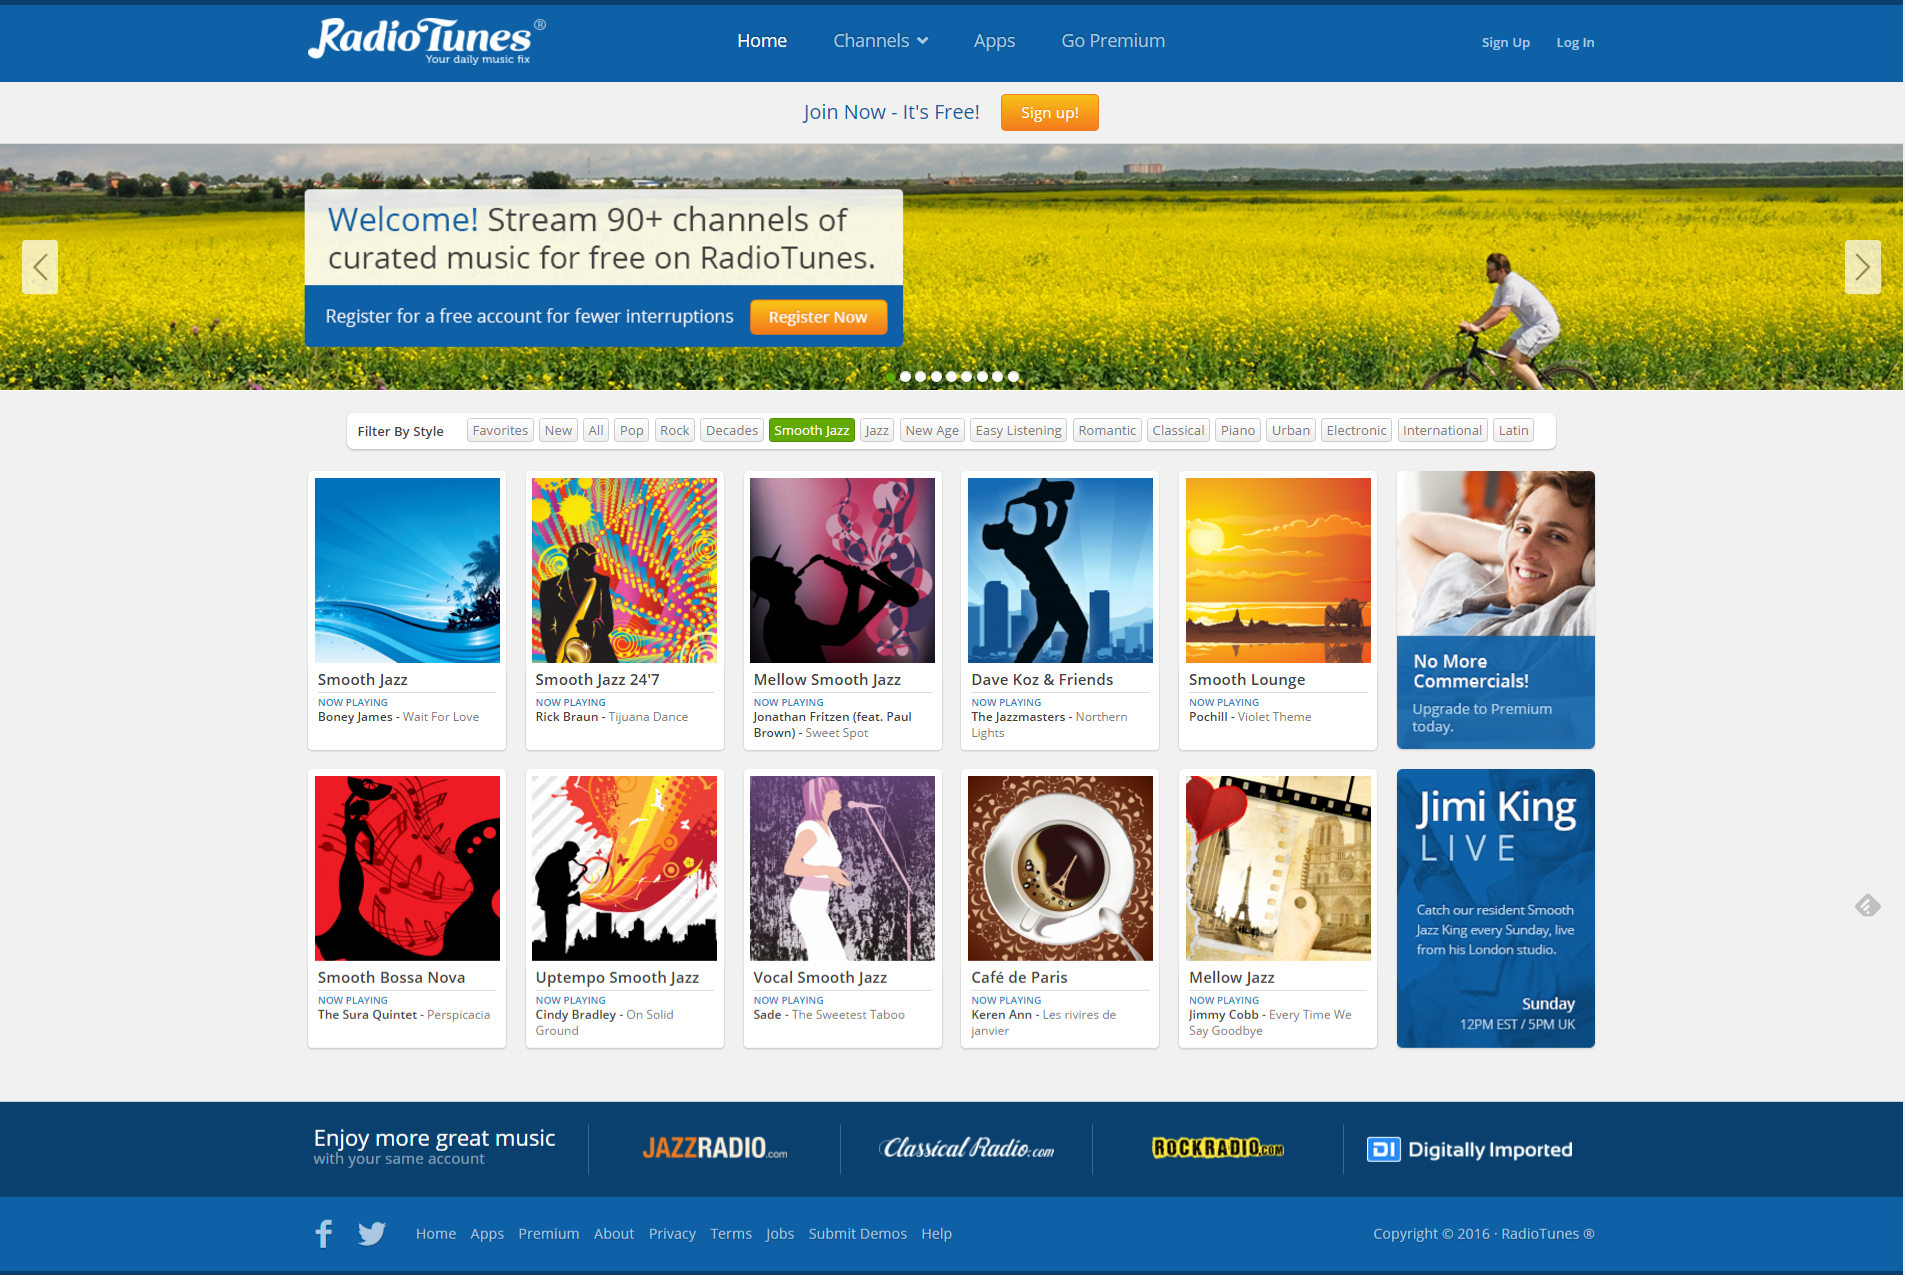 radiotunes-enjoy-amazing-free-internet-radio-stations